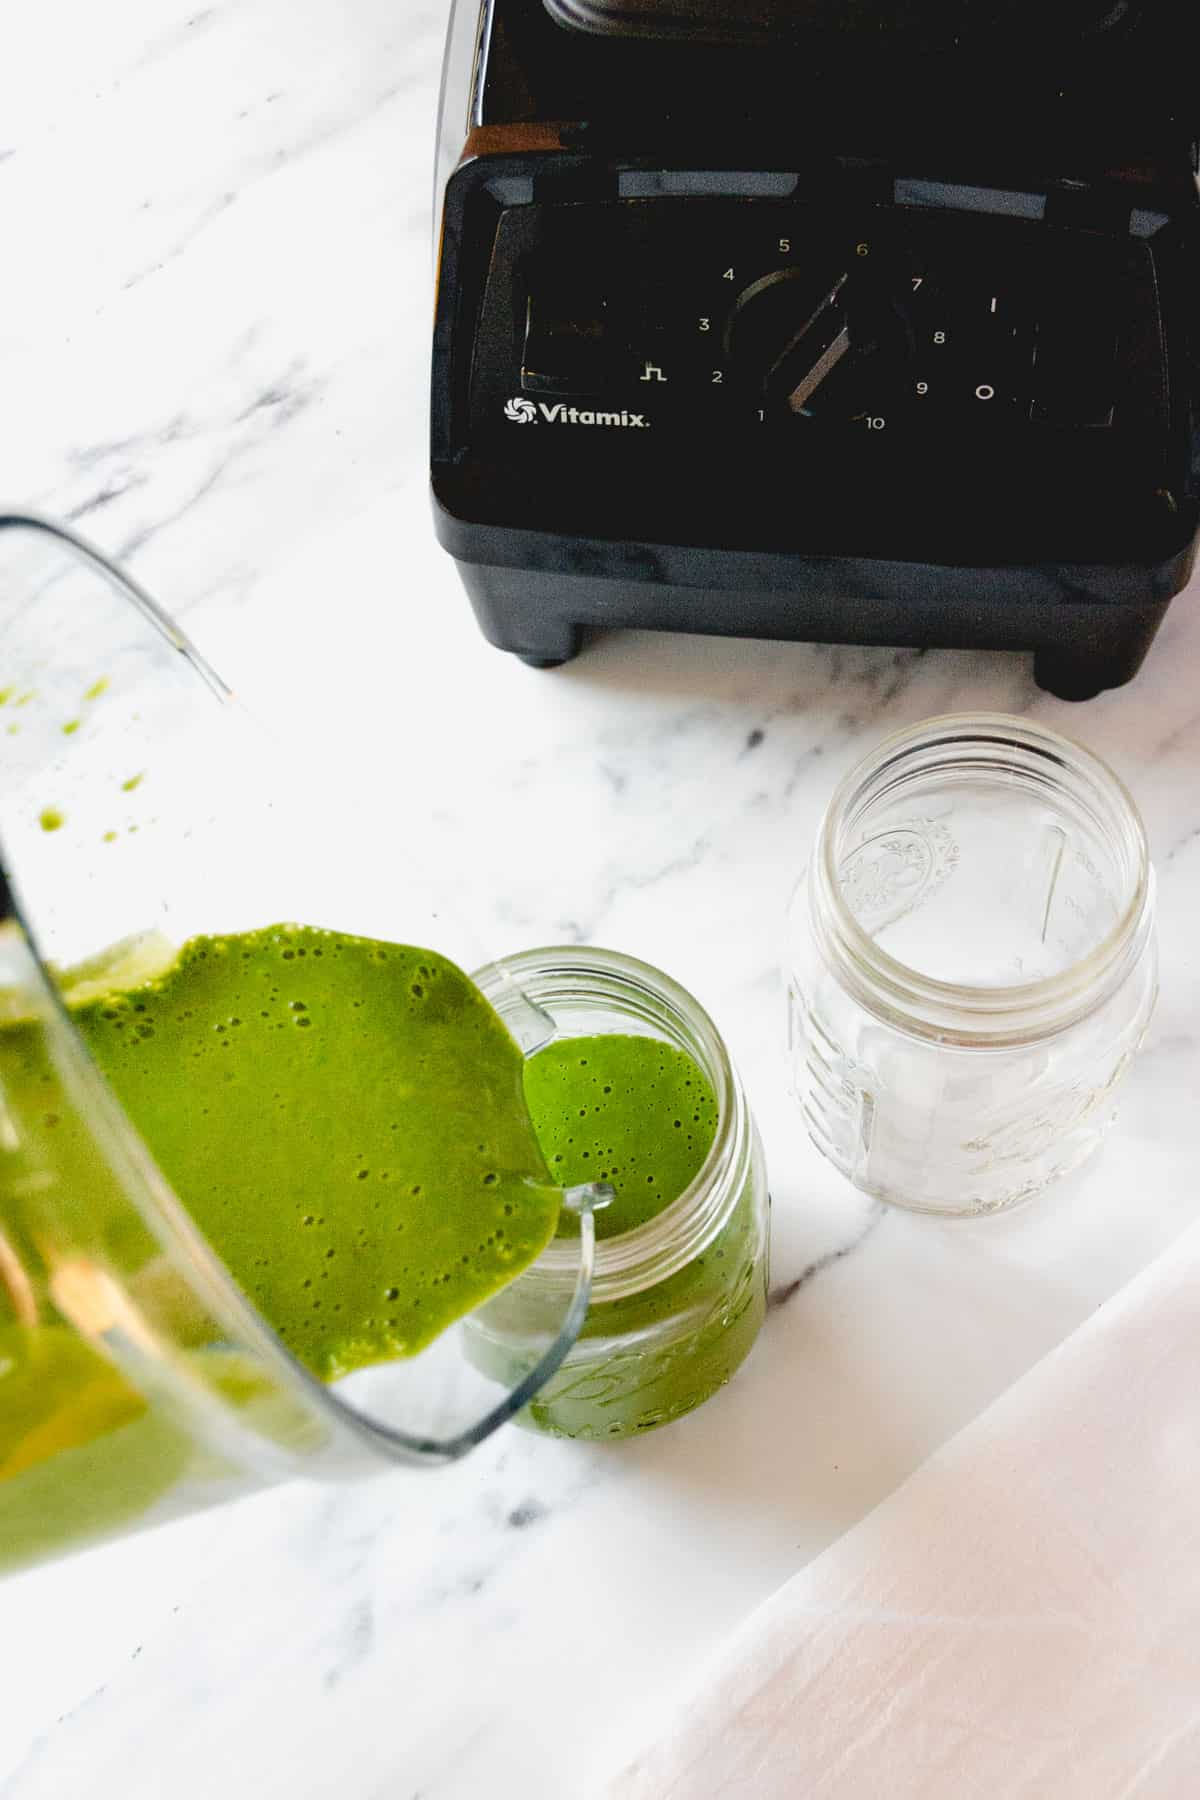 Pouring a bright green smoothie from a blender into a mason jar